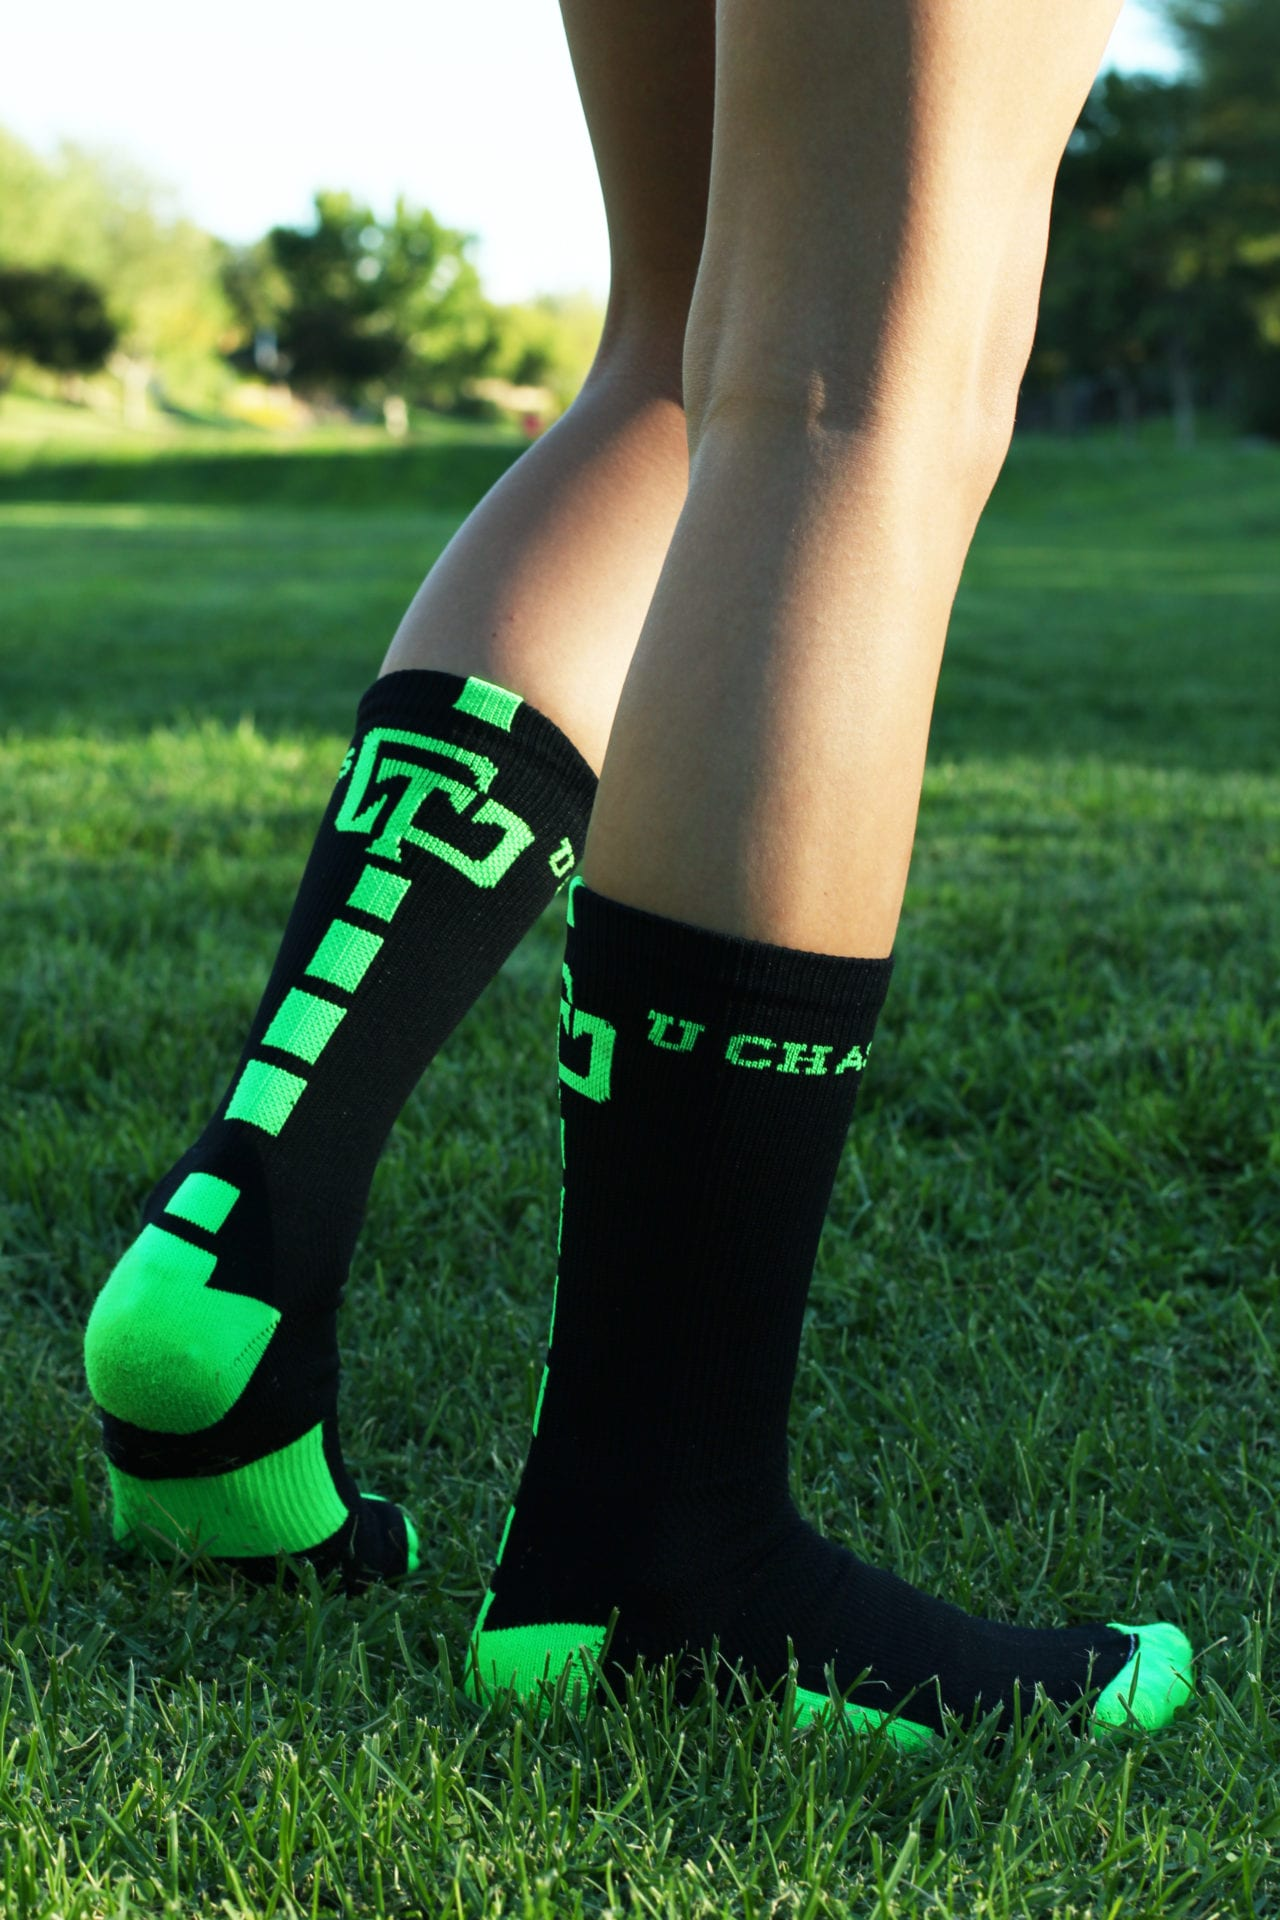 U Chase This branded black socks with lime green branding